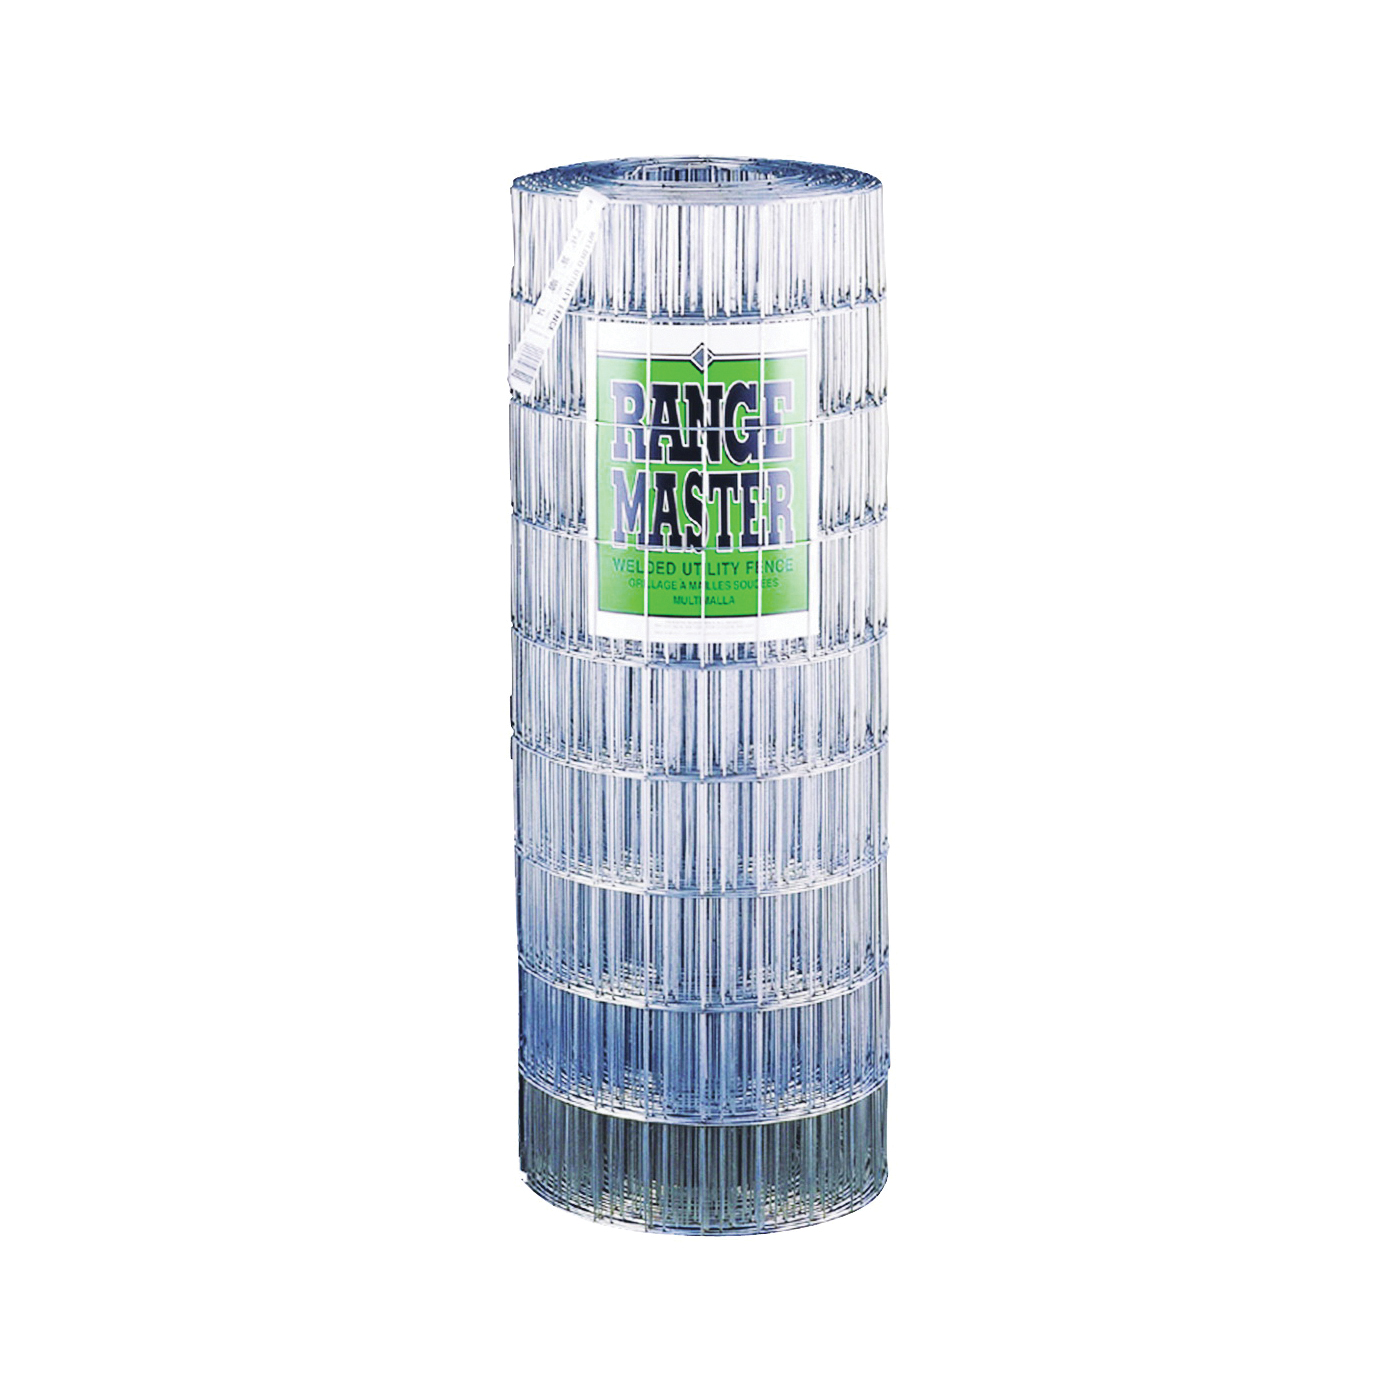 Picture of Jackson Wire 10 01 39 14 Welded Wire Fence, 100 ft L, 48 in H, 2 x 4 in Mesh, 12-1/2 Gauge, Galvanized